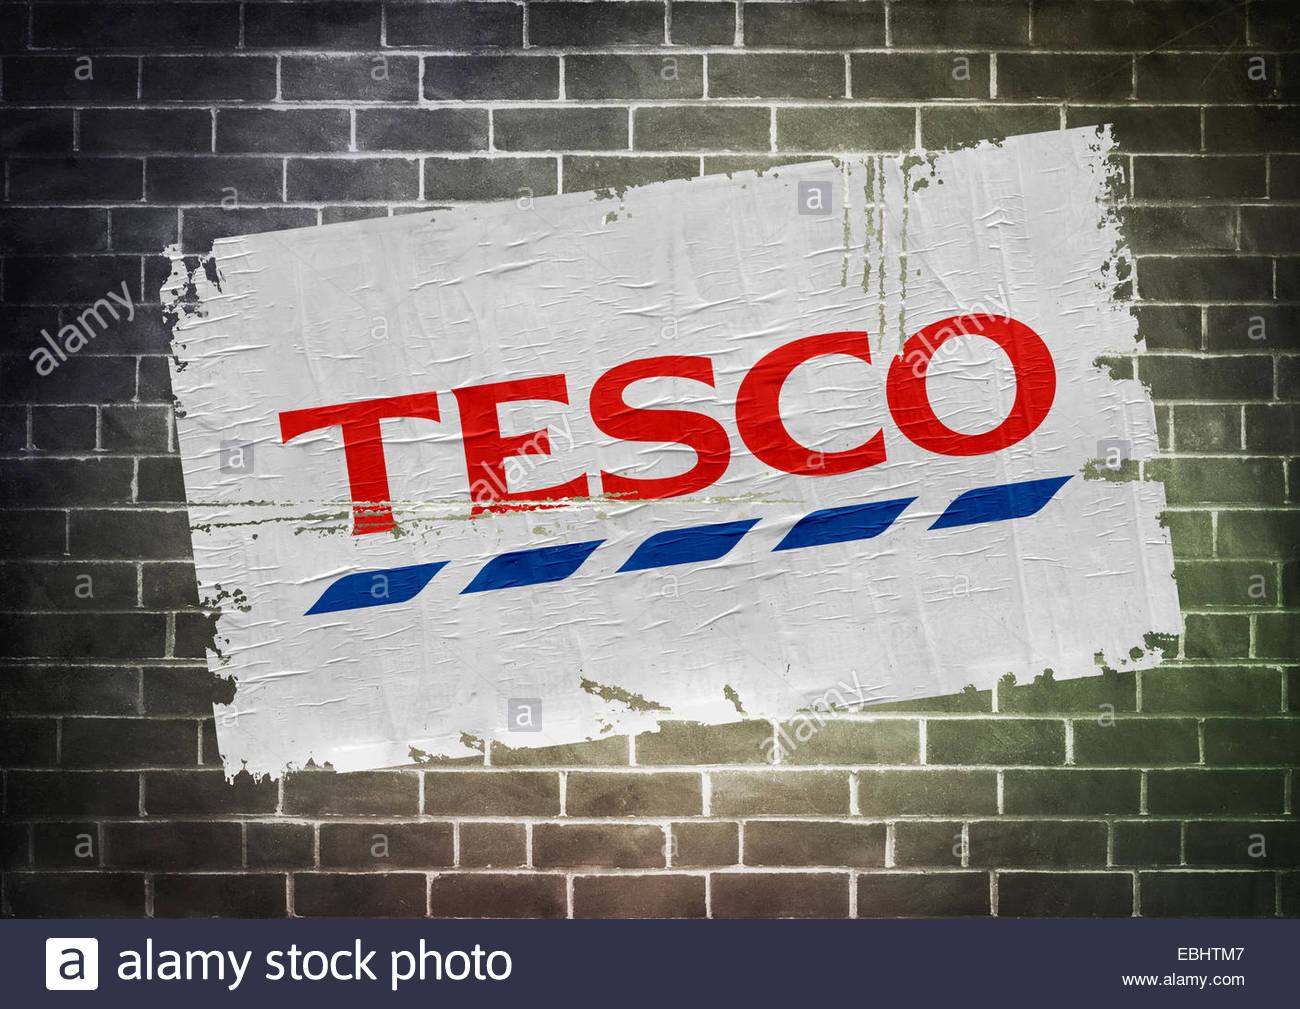 Tesco logo icon poster Stock Photo: 75995255 - Alamy